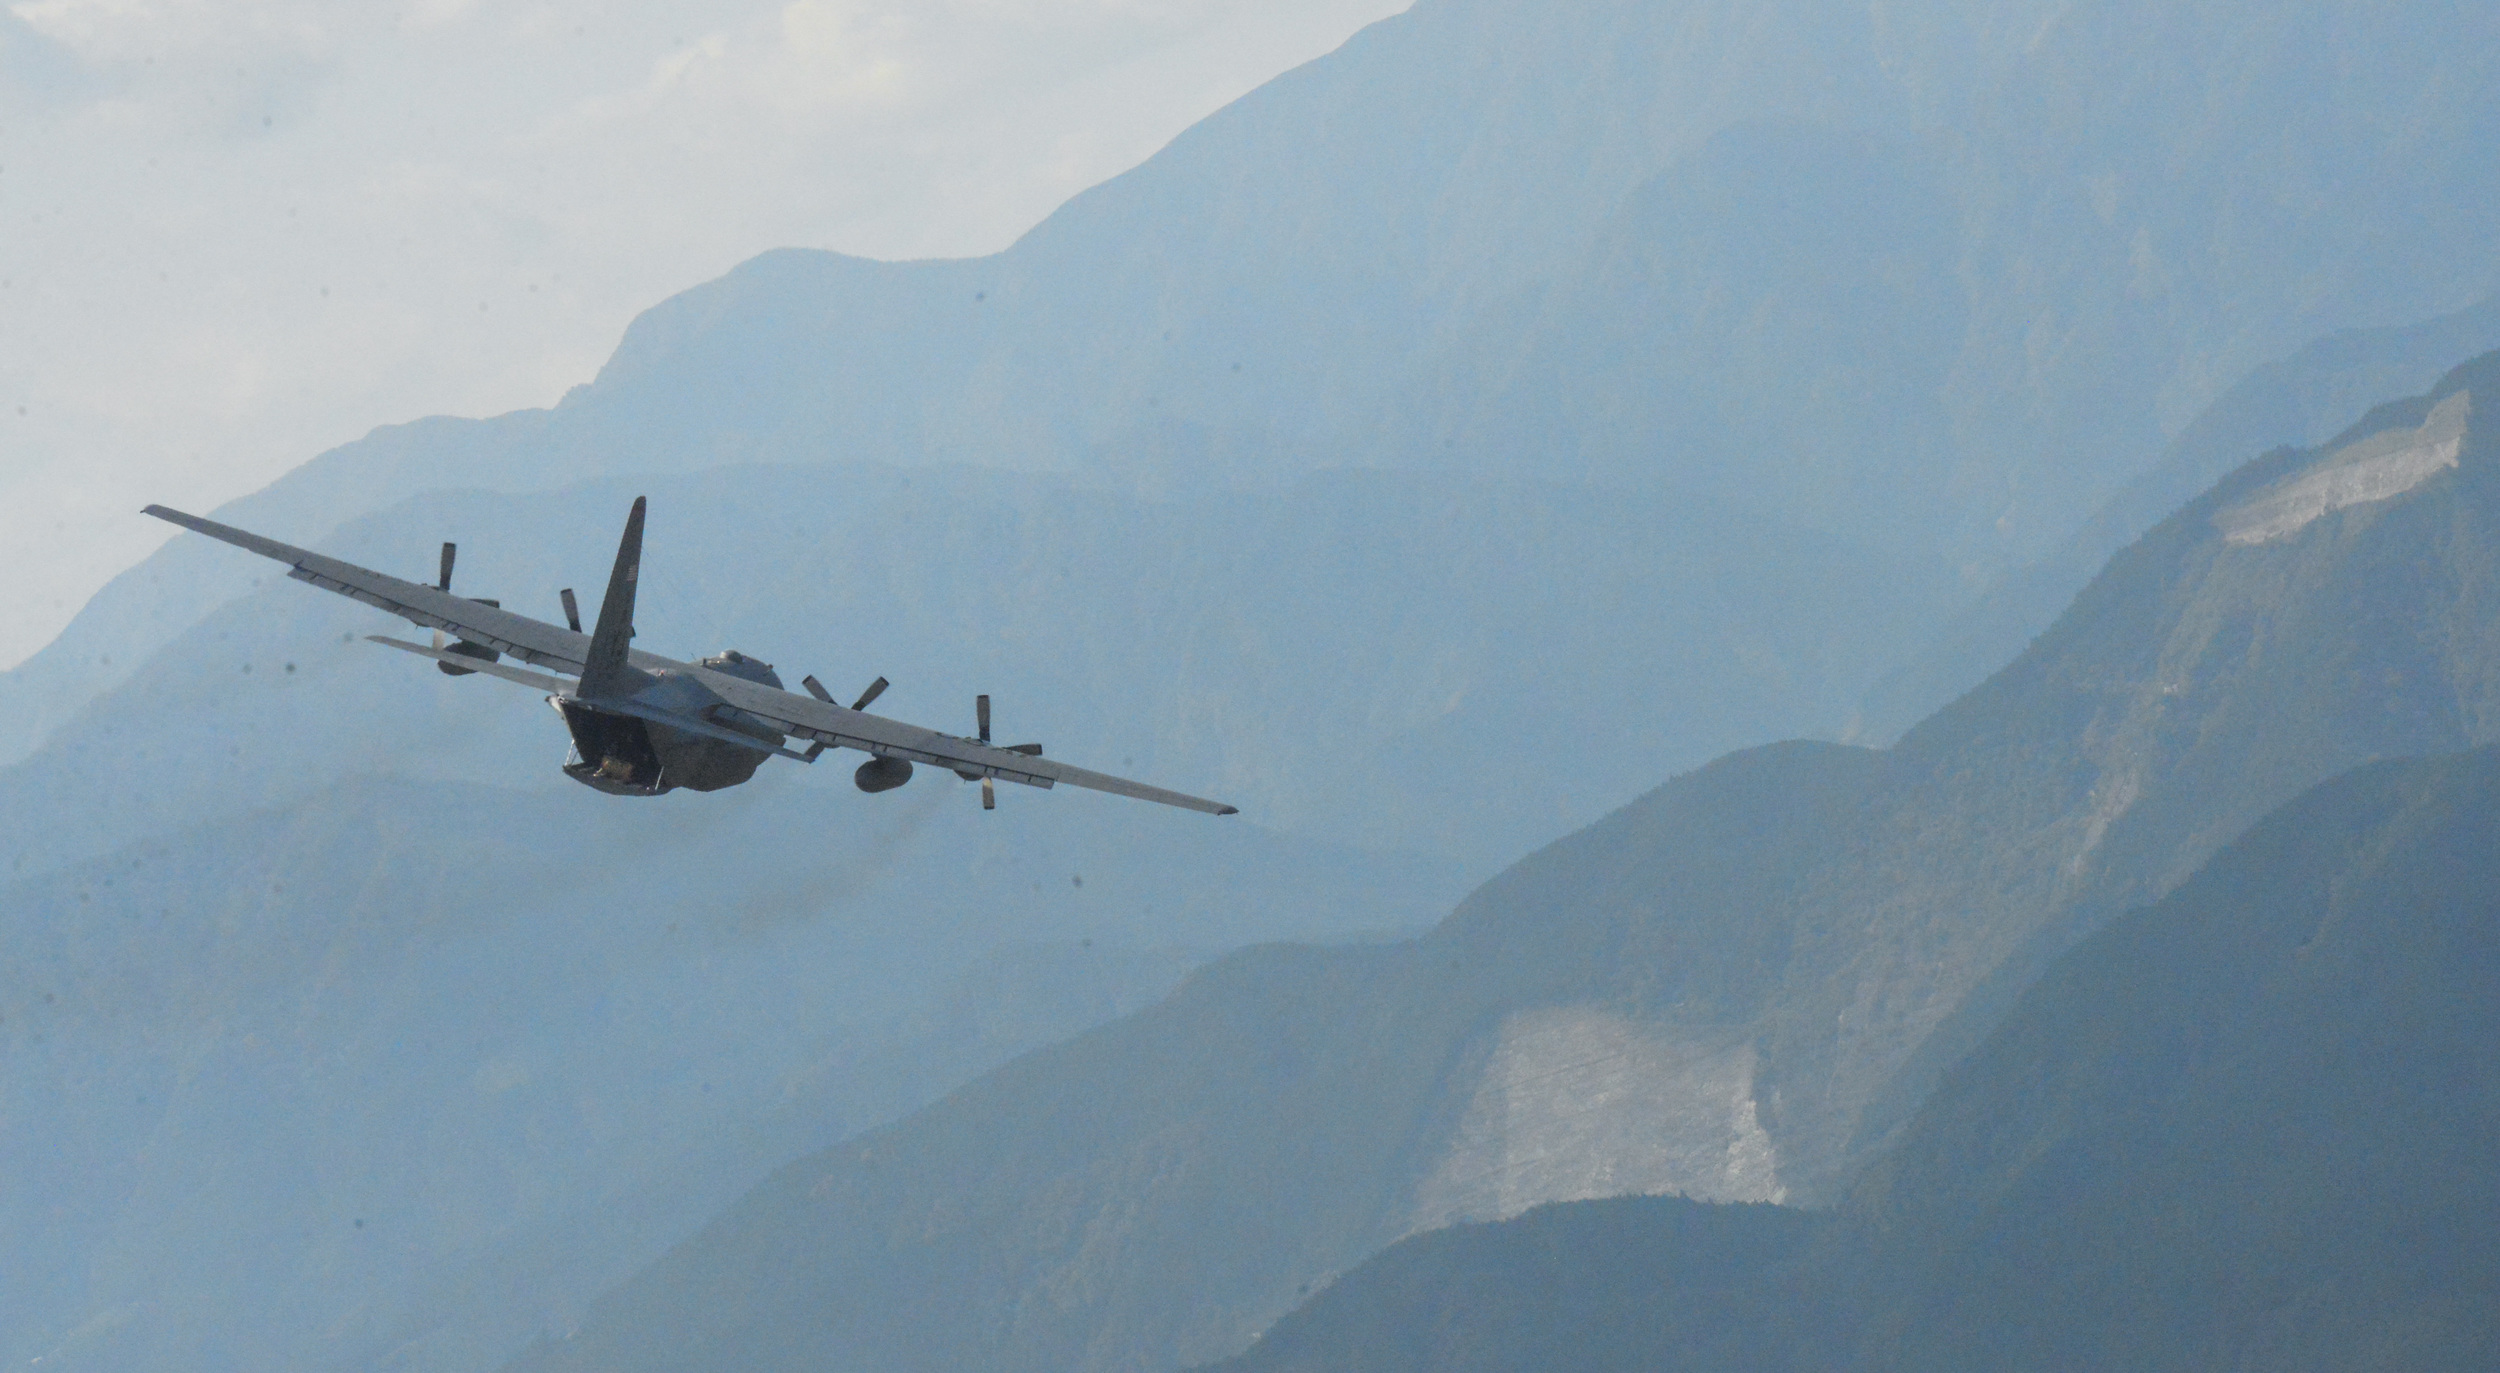 A C-130 Hercules flies over a mountainous region of Japan, Oct. 14, 2015. Performing regular in-flight operations gives all related operations personnel real -world experience to stay prepared for contingency situations. (U.S. Air Force photo by Airman 1st Class Elizabeth Baker/Released)